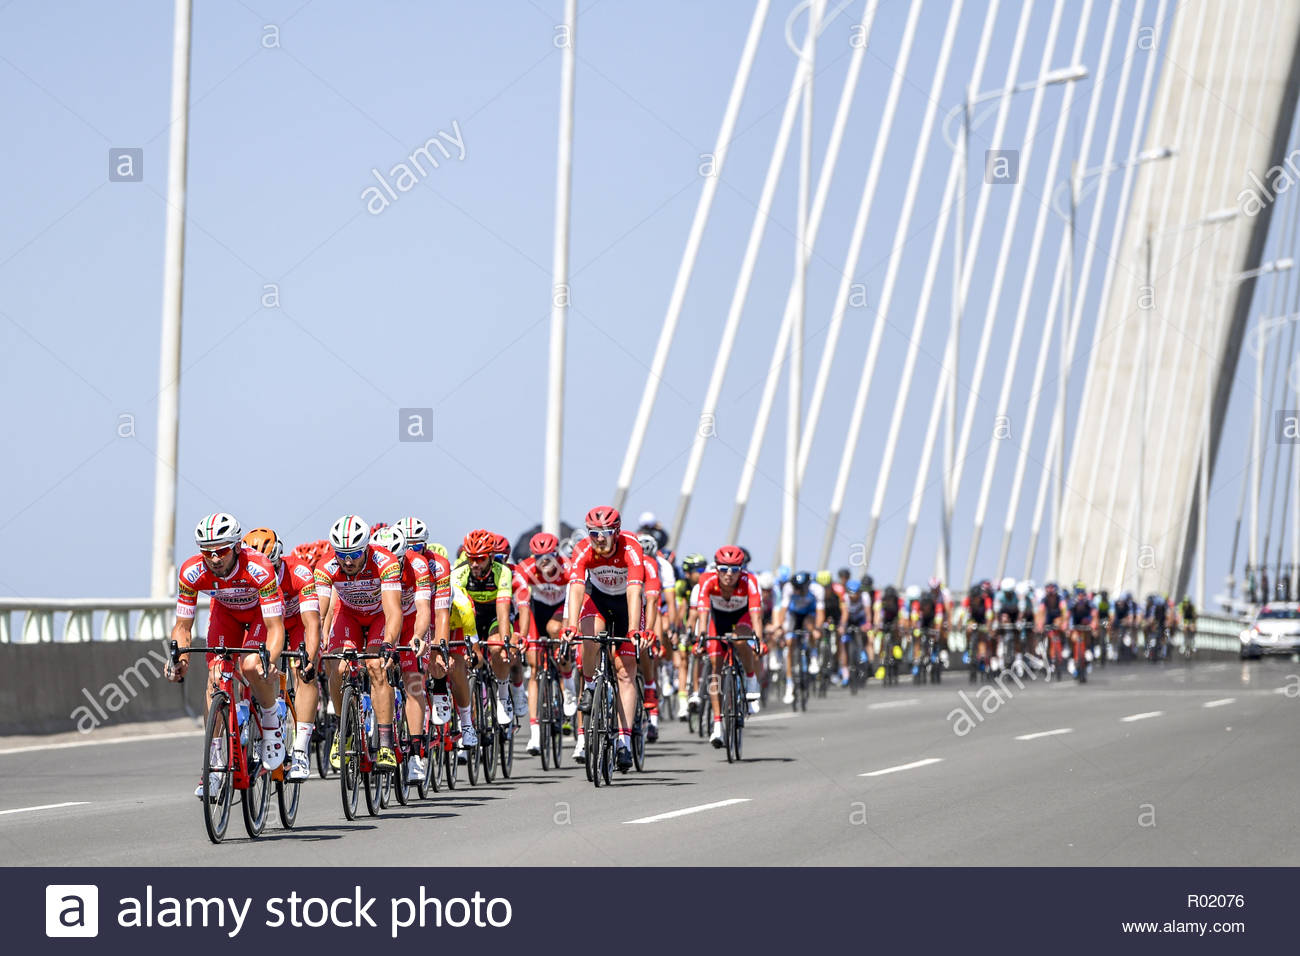 Changjiang, China. 31st Oct, 2018. 2018 around island cycling race the 9th stage held in Changjiang, Hainan, China on 31 October 2018.(Photo by TPG/CNS) Credit: TopPhoto/Alamy Live News - Stock Image